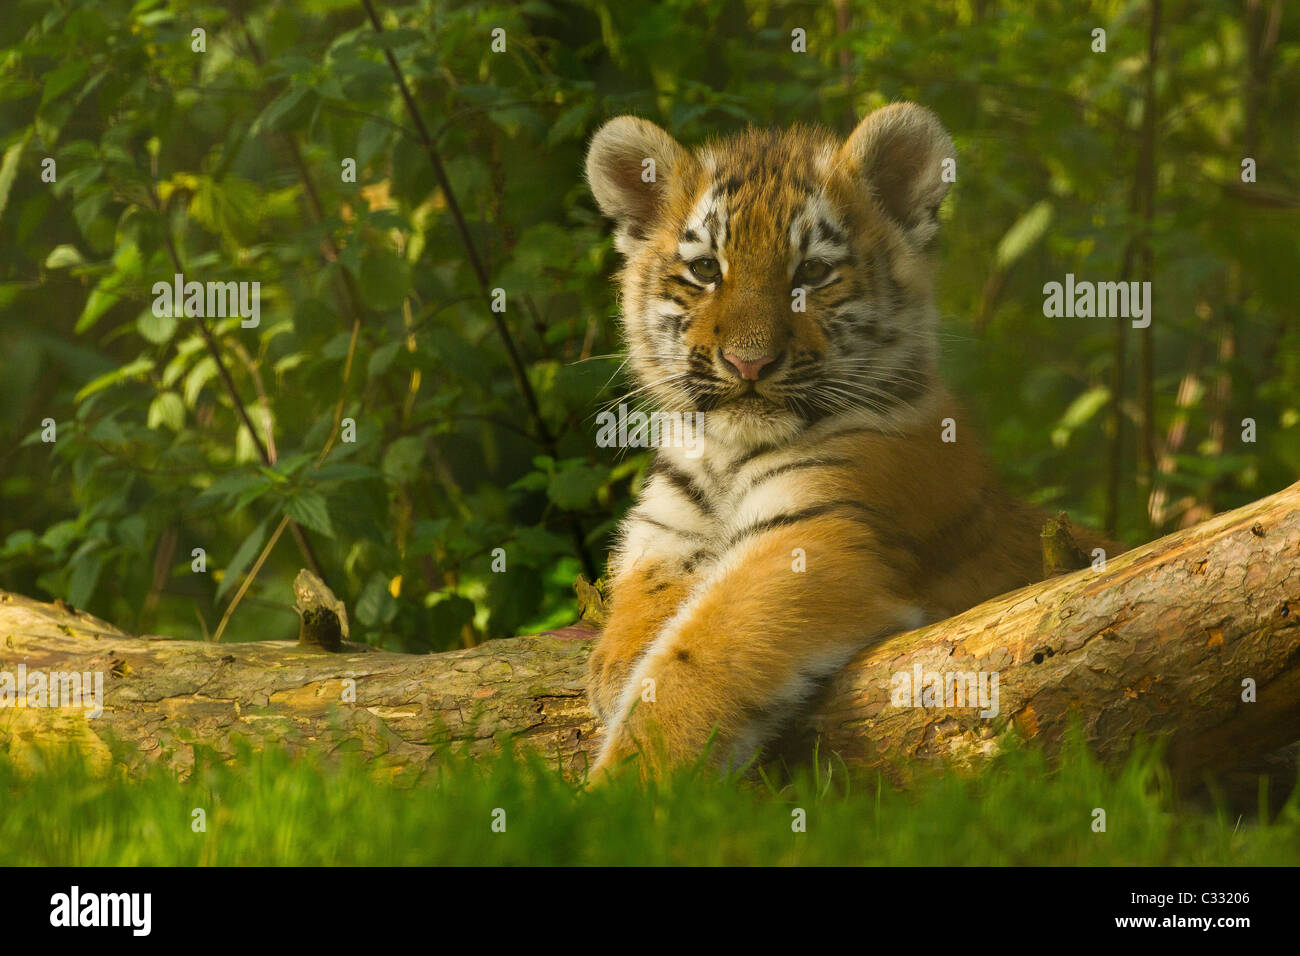 Siberian/Amur Tiger Cub on Log - Stock Image